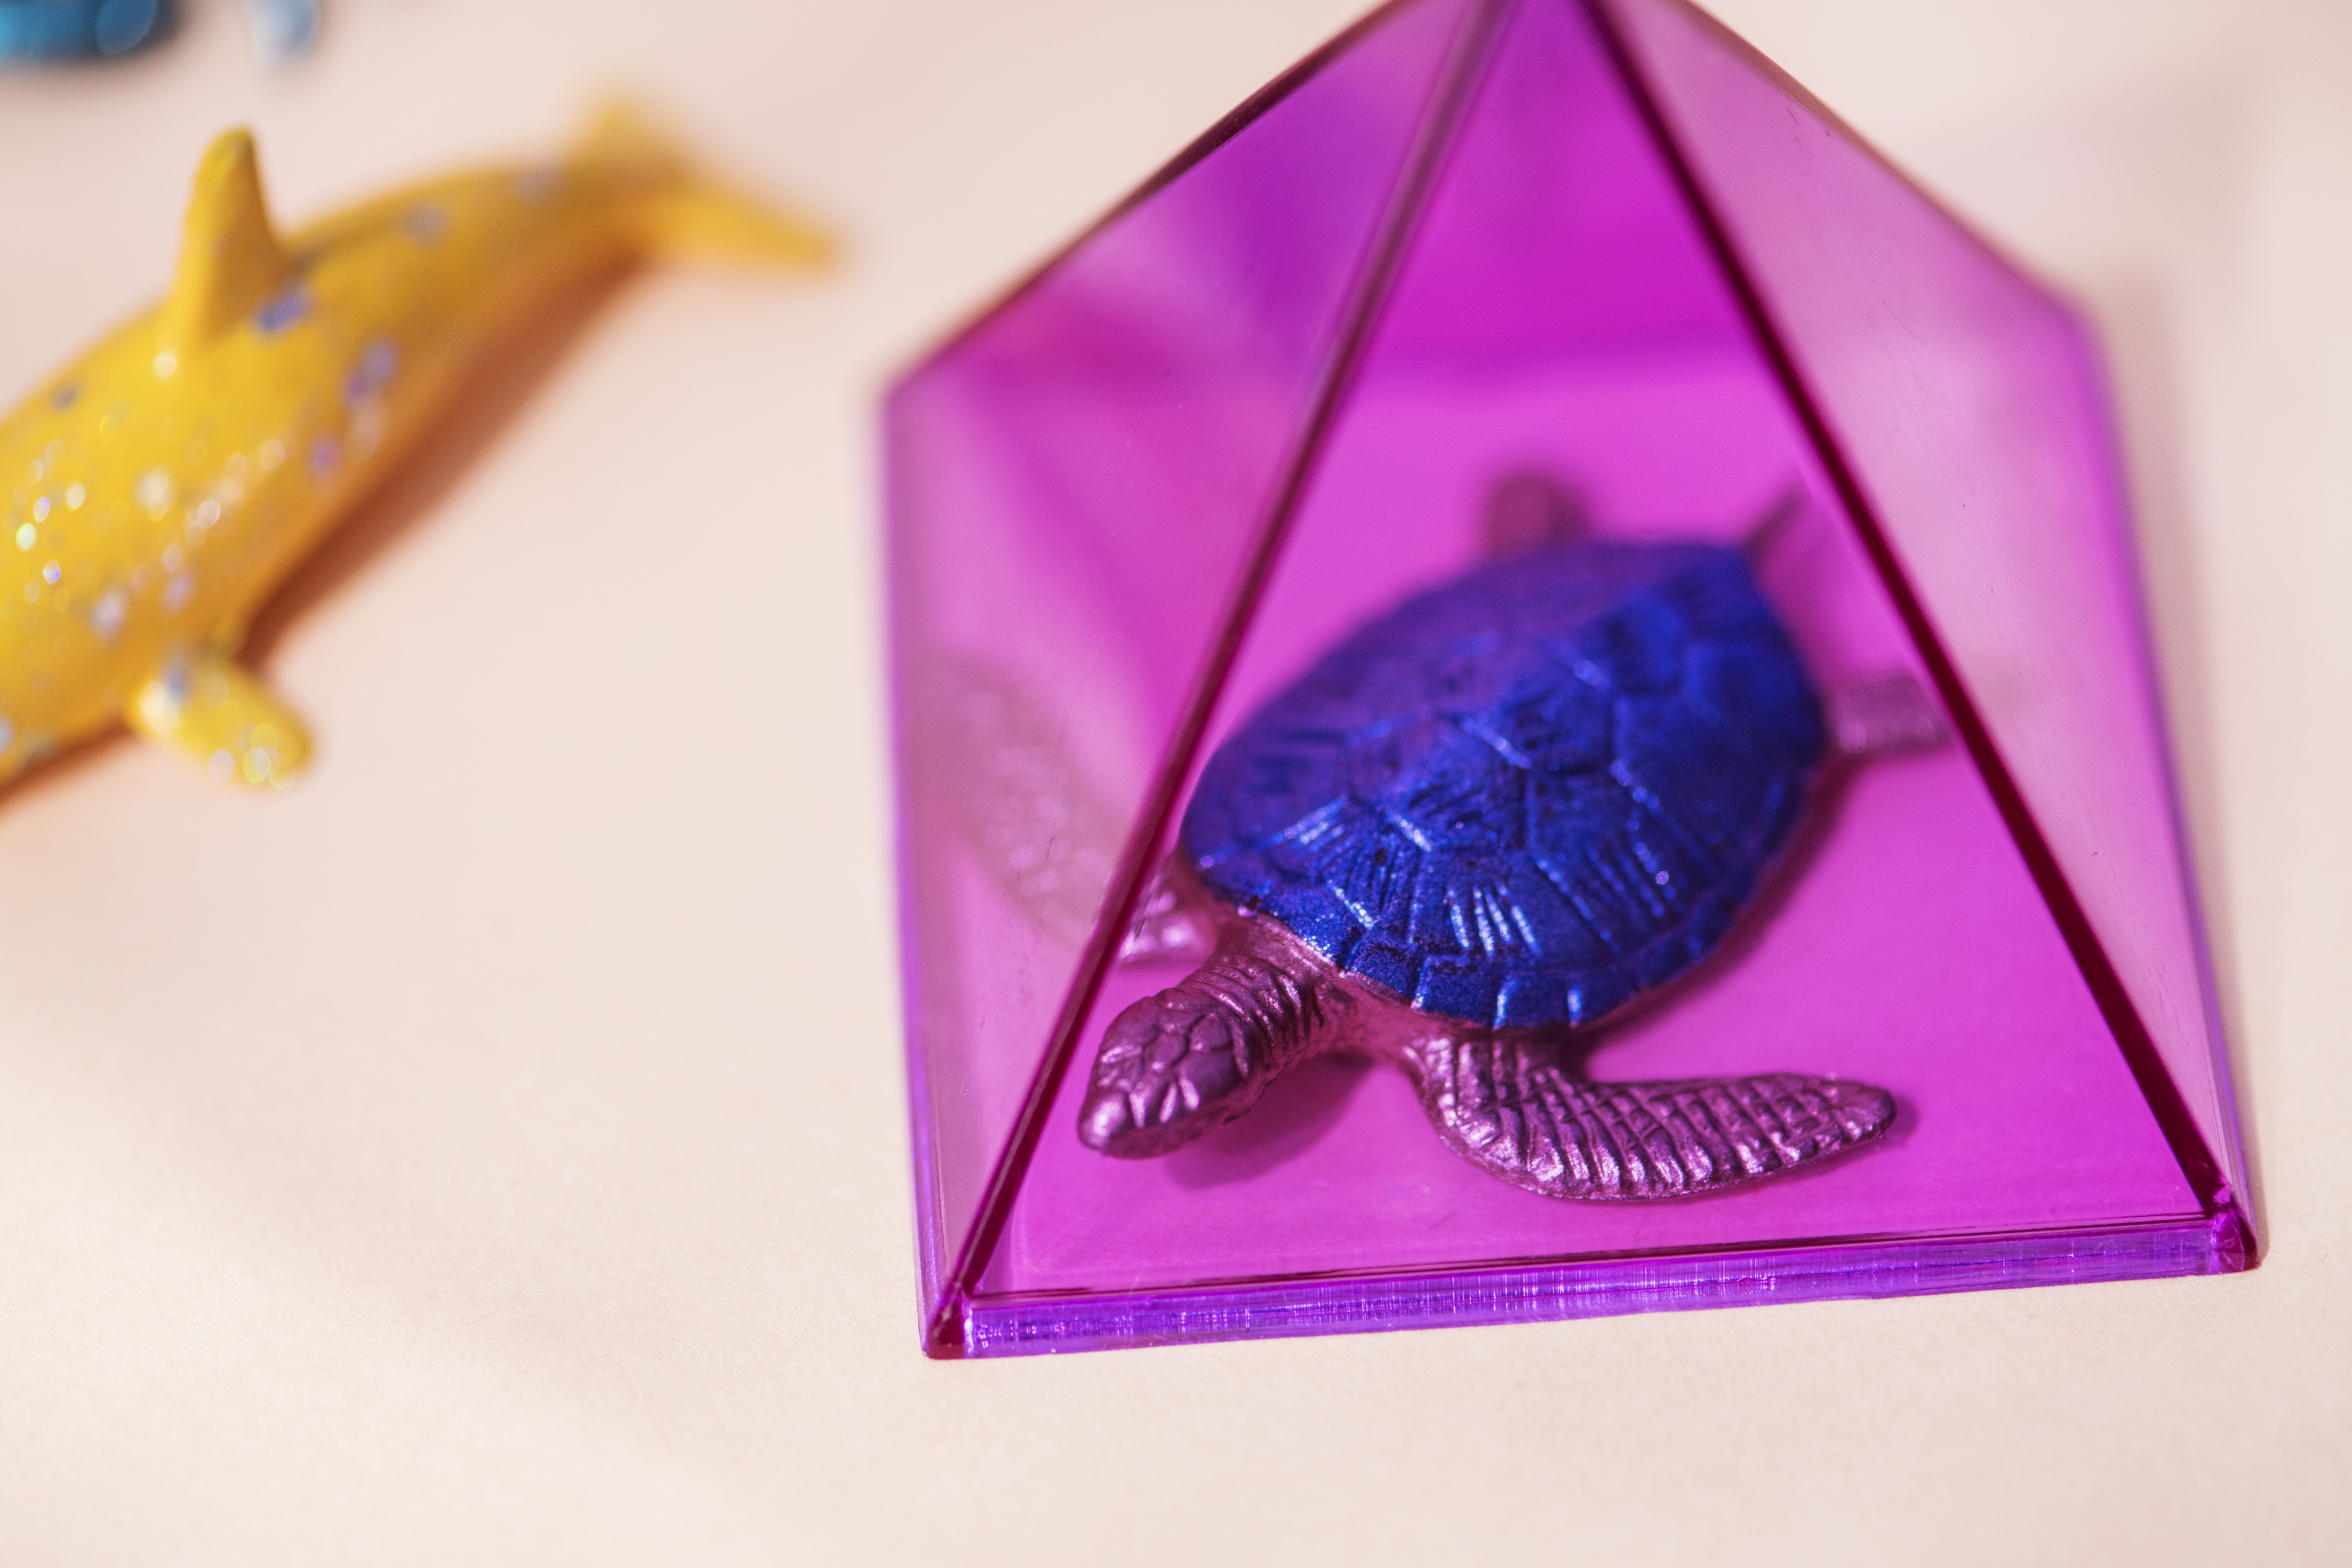 Colorful and bright miniature animal figures